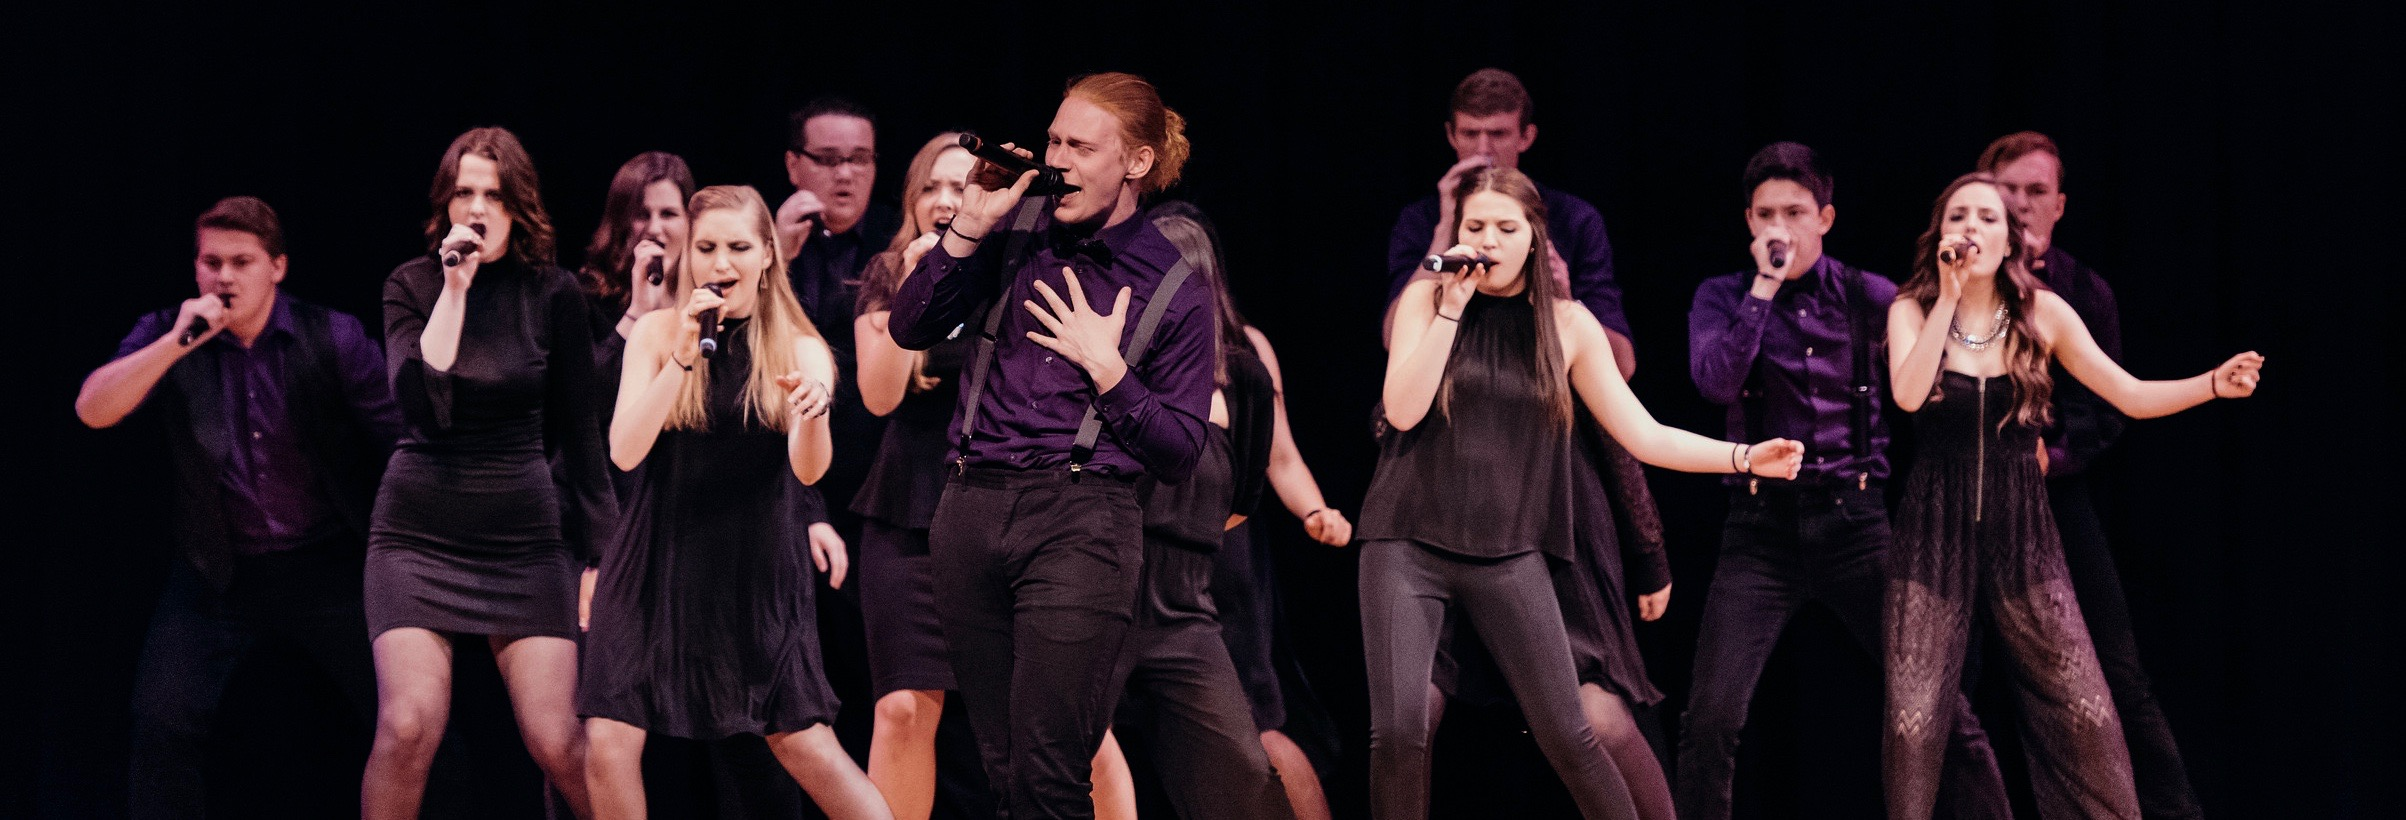 Best A Cappella Group 34